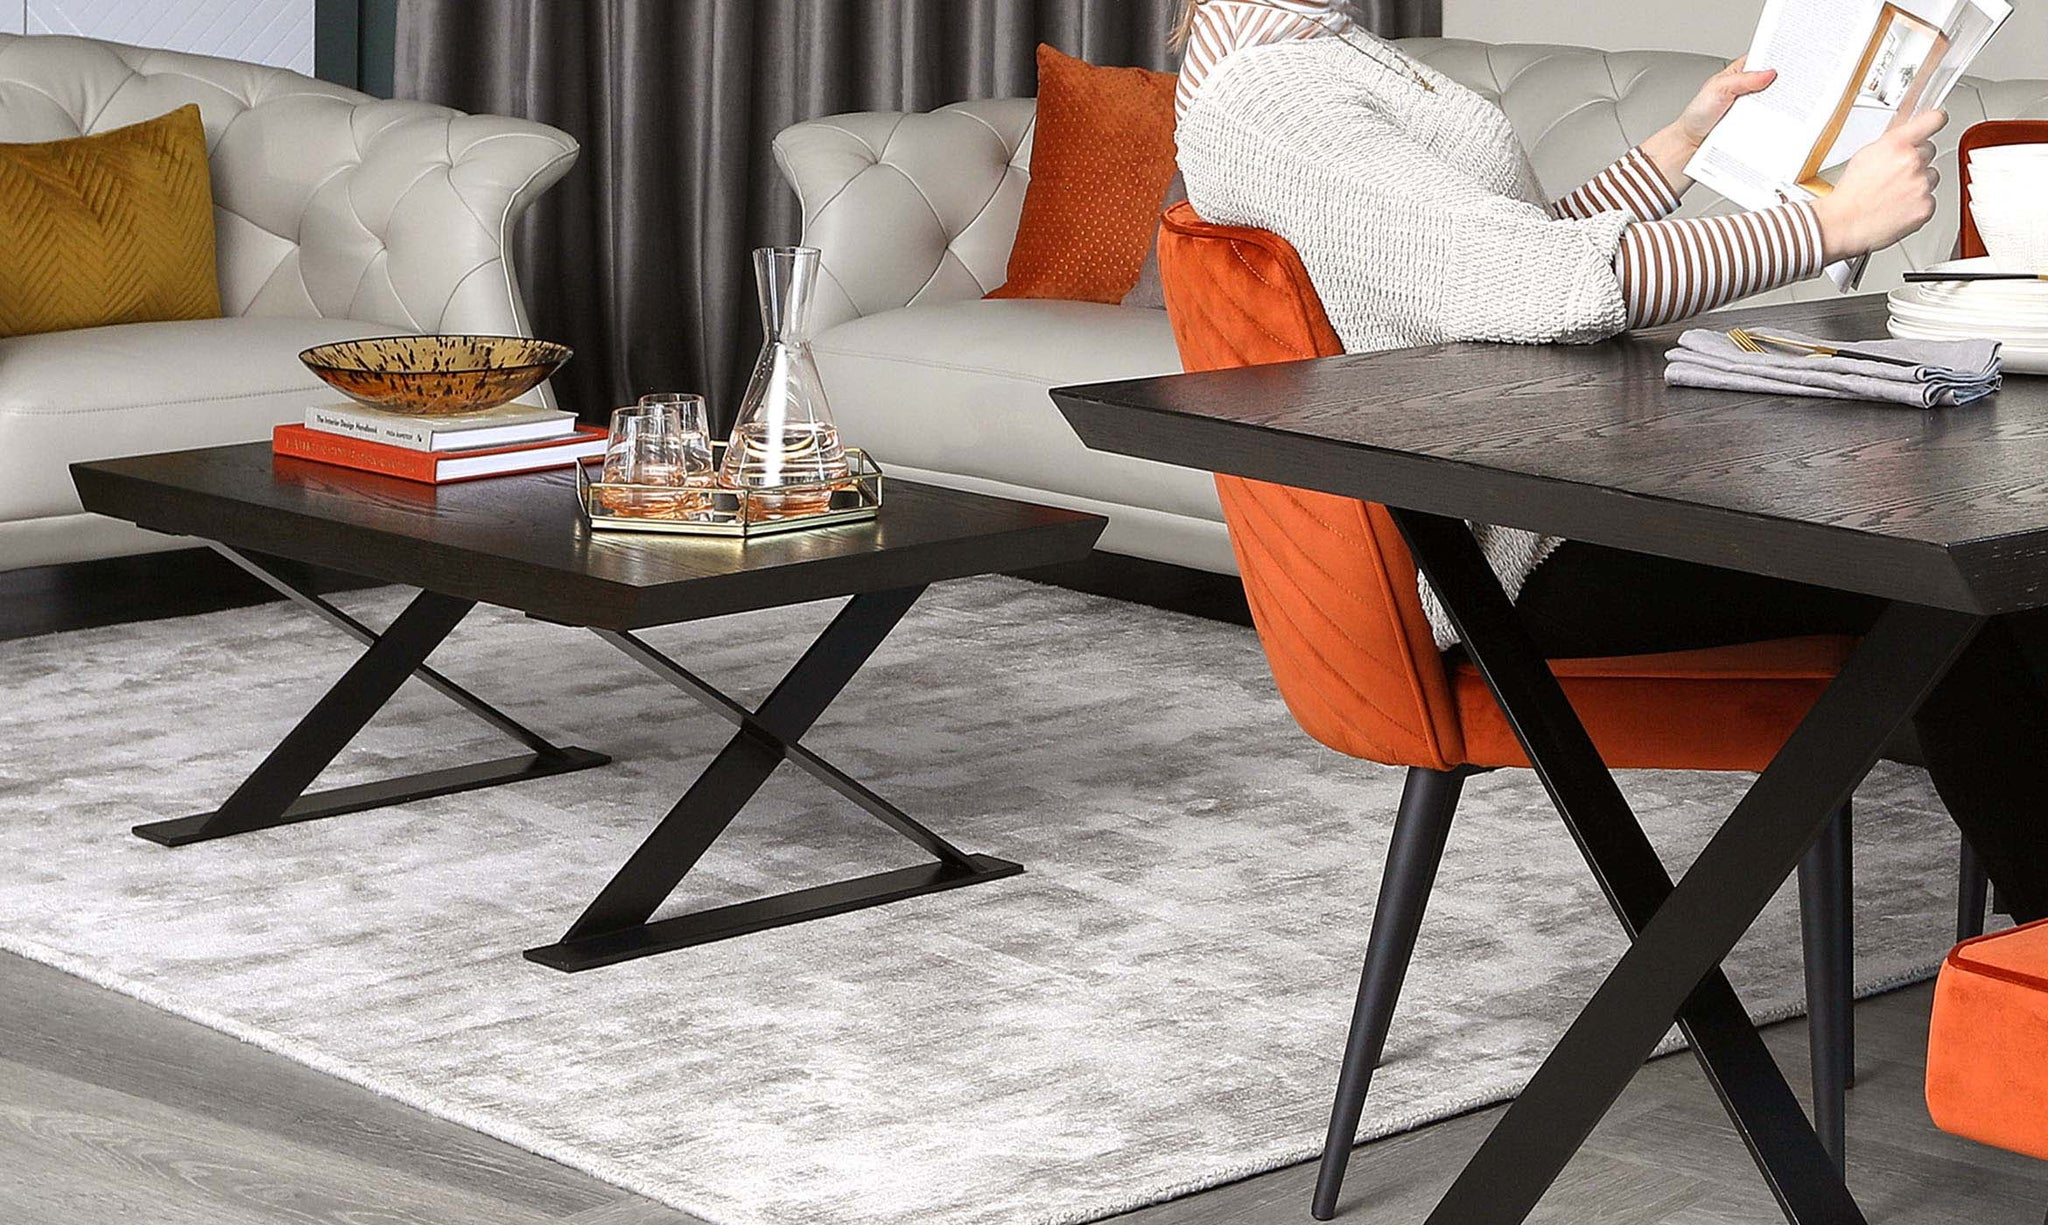 Living Room inspiration: 3 questions to ask yourself before buying a coffee table